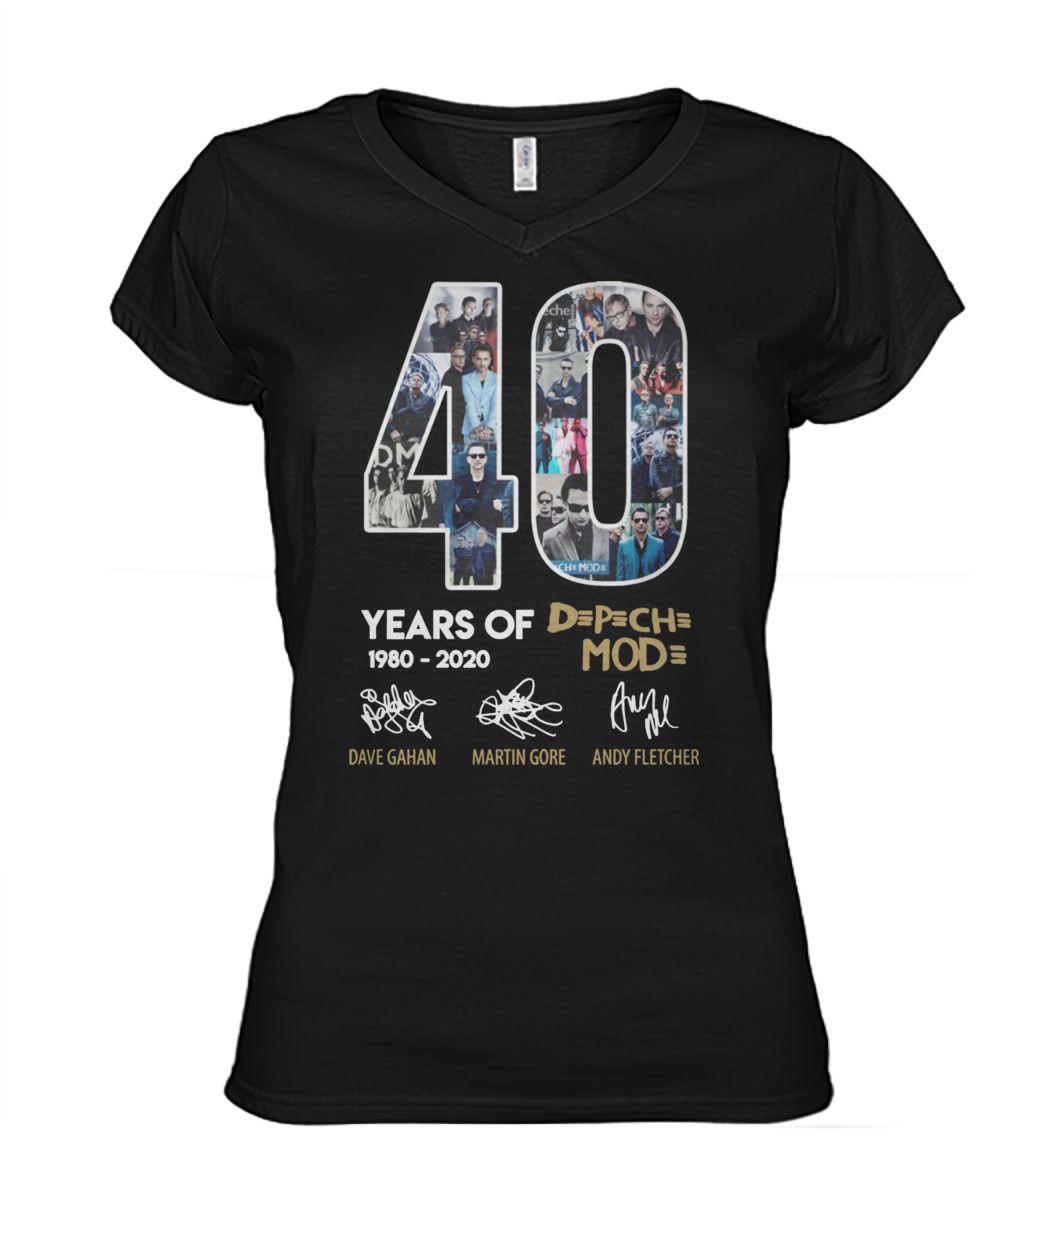 40 years of depeche mode 1980-2020 thank you for the memories signature women's v-neck